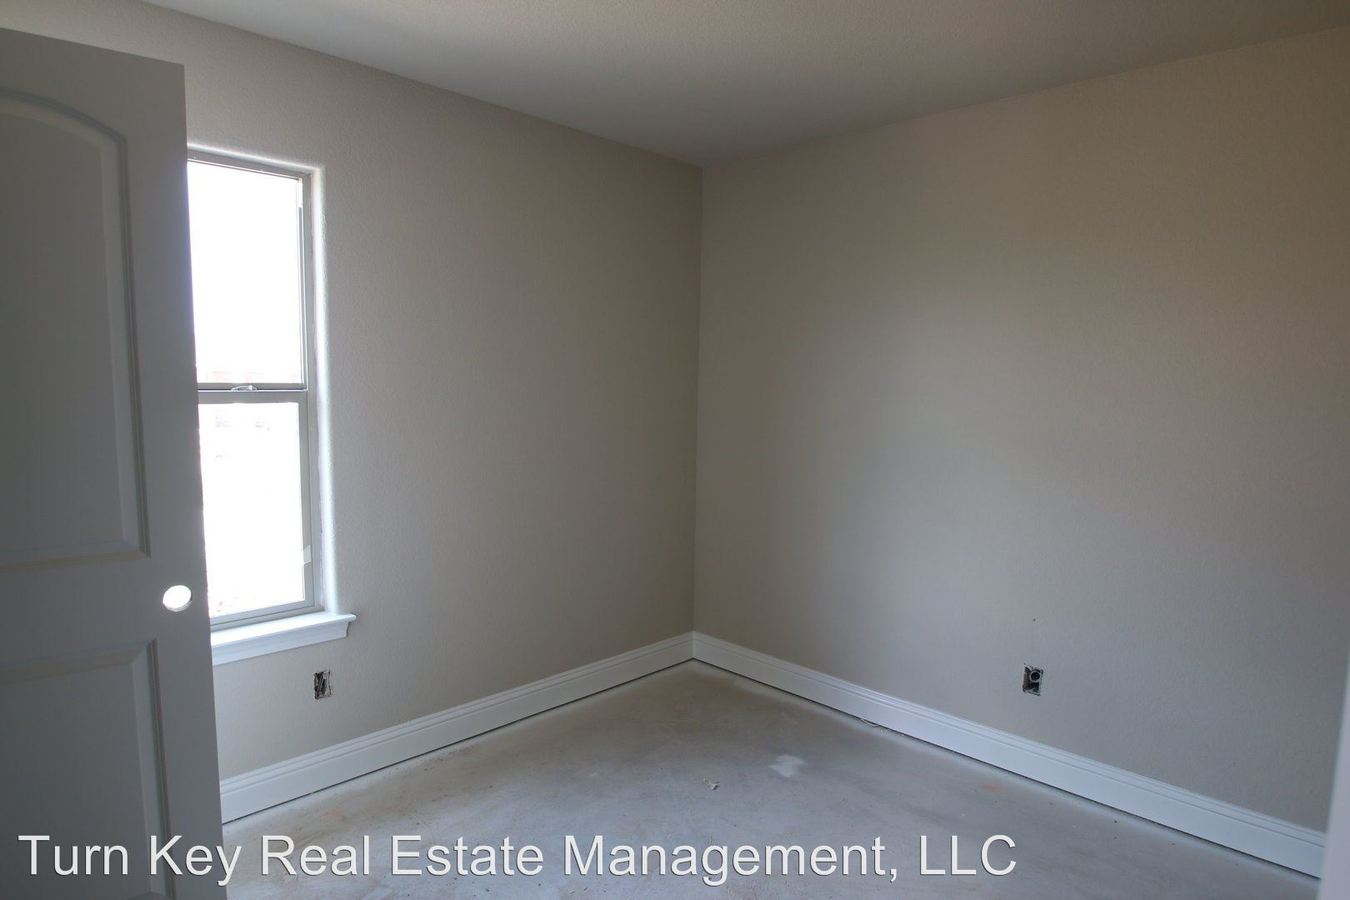 3 Bedrooms 2 Bathrooms Apartment for rent at 141-143 Crossbow Ct. in Weatherford, TX